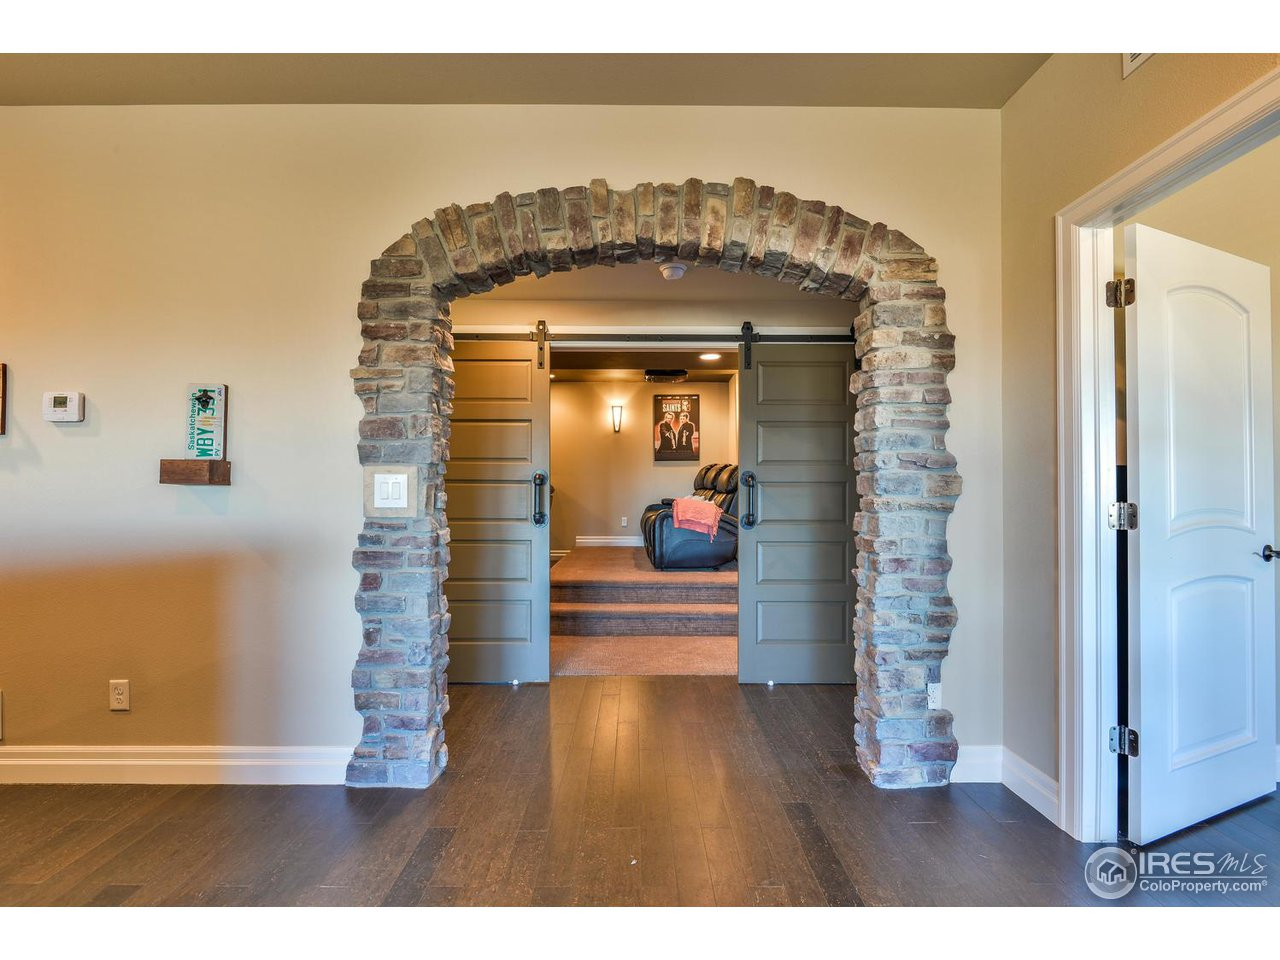 Entry to Basement Theater Room